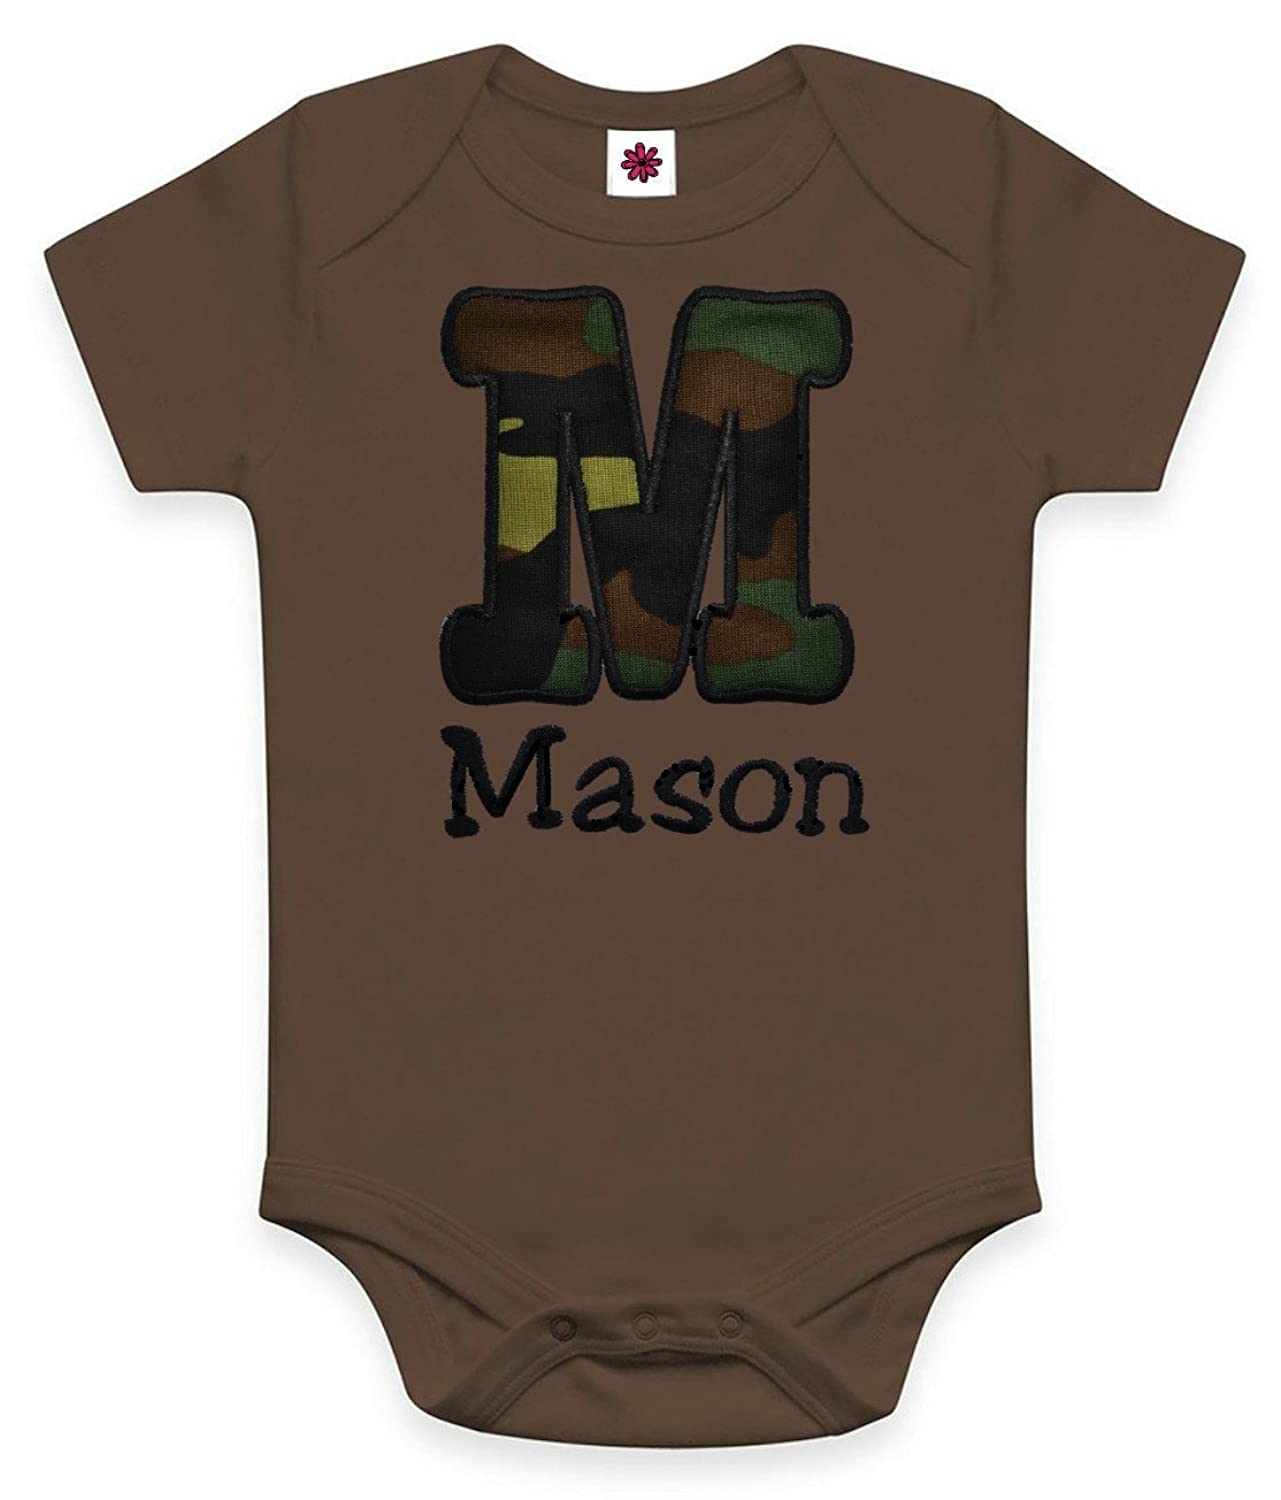 f583f5f85 Amazon.com: Personalized Embroidered Army Camouflage Onesie Bodysuit for  Baby - Your Custom Name!: Clothing